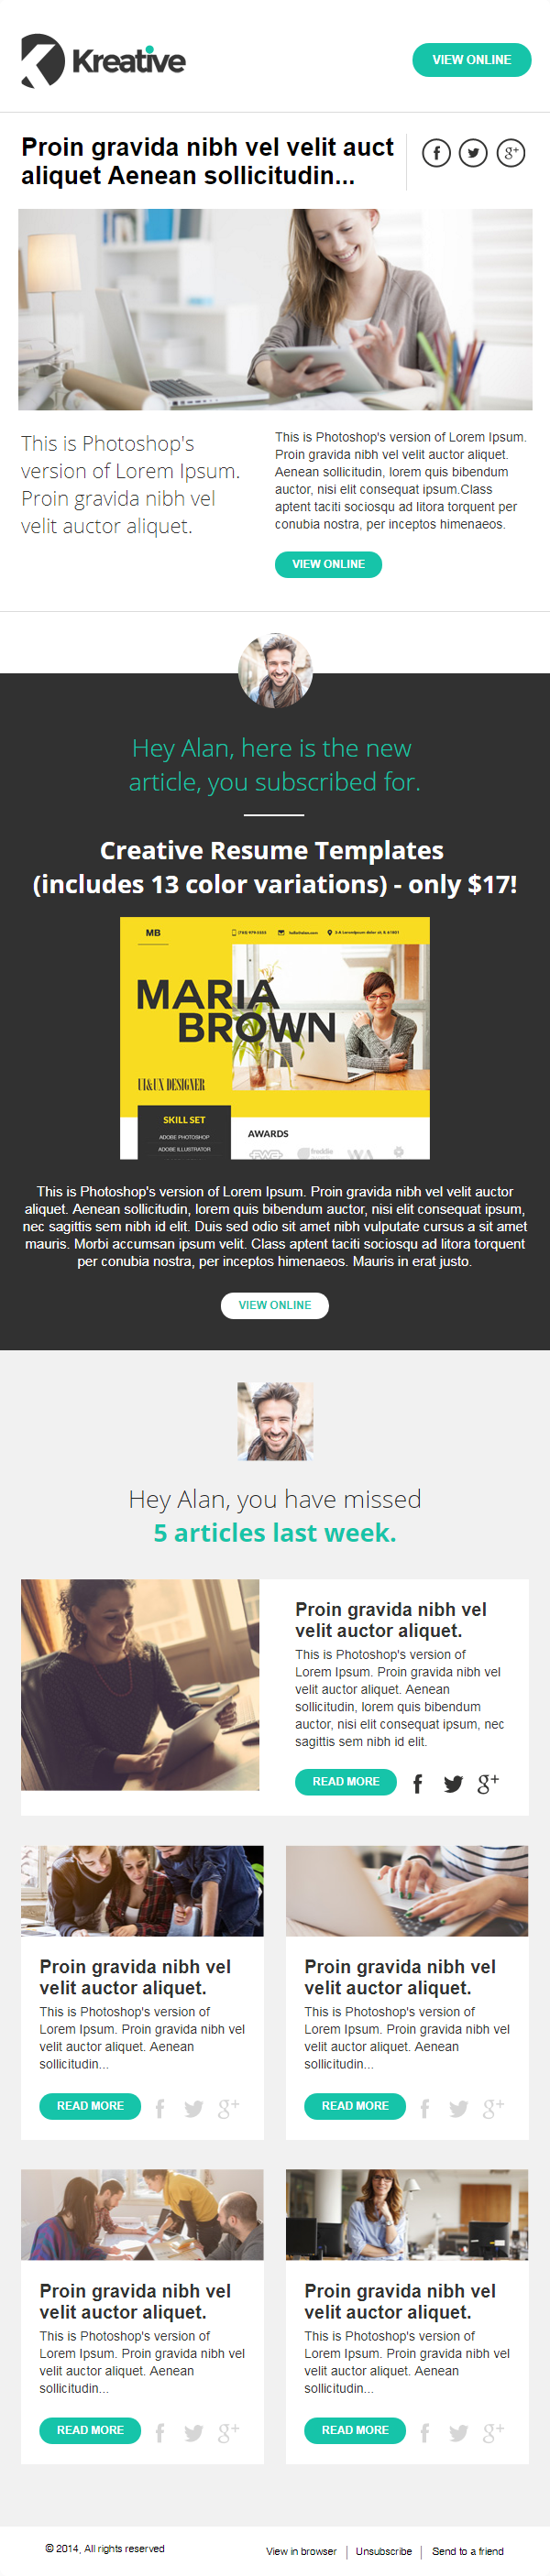 Kreative Free Newsletter Template. consulting 001 free newsletter templates free email newsletter. benchmark email. select email newsletter template. free email newsletter templates mailerlite. free email newsletter template